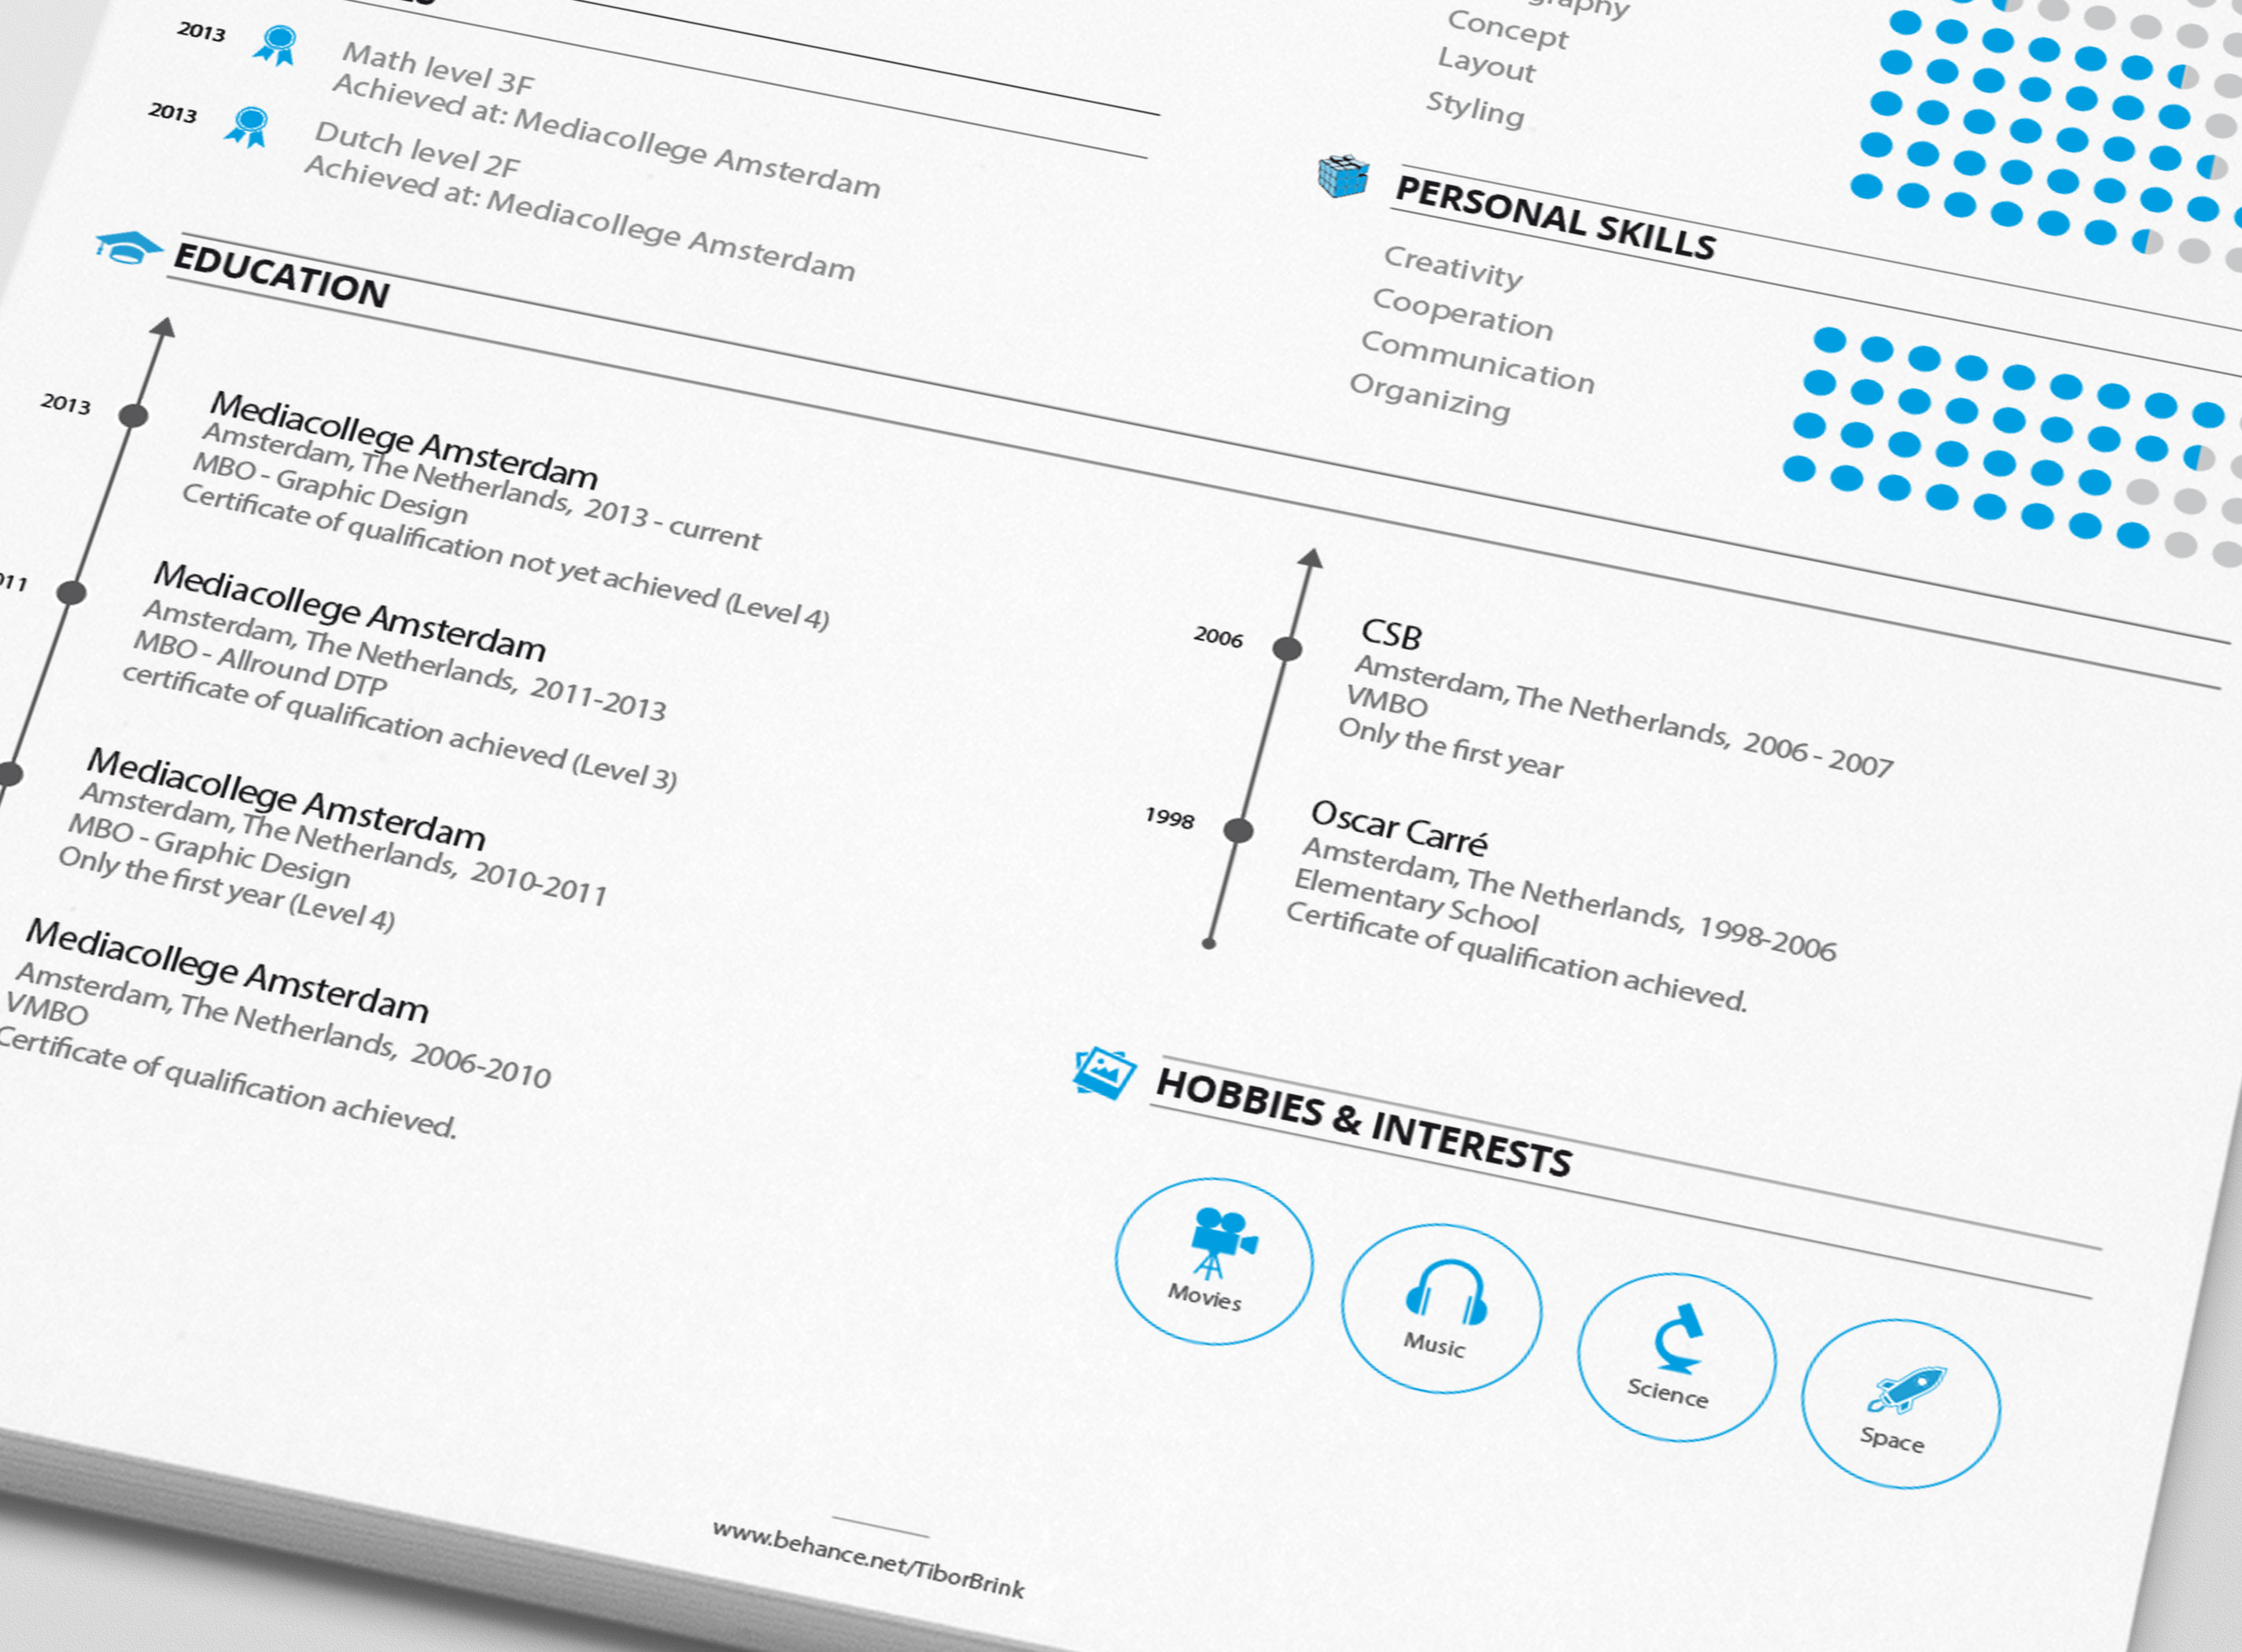 Personal Resume U0026 Promotion On Behance  Personal Skills For A Resume